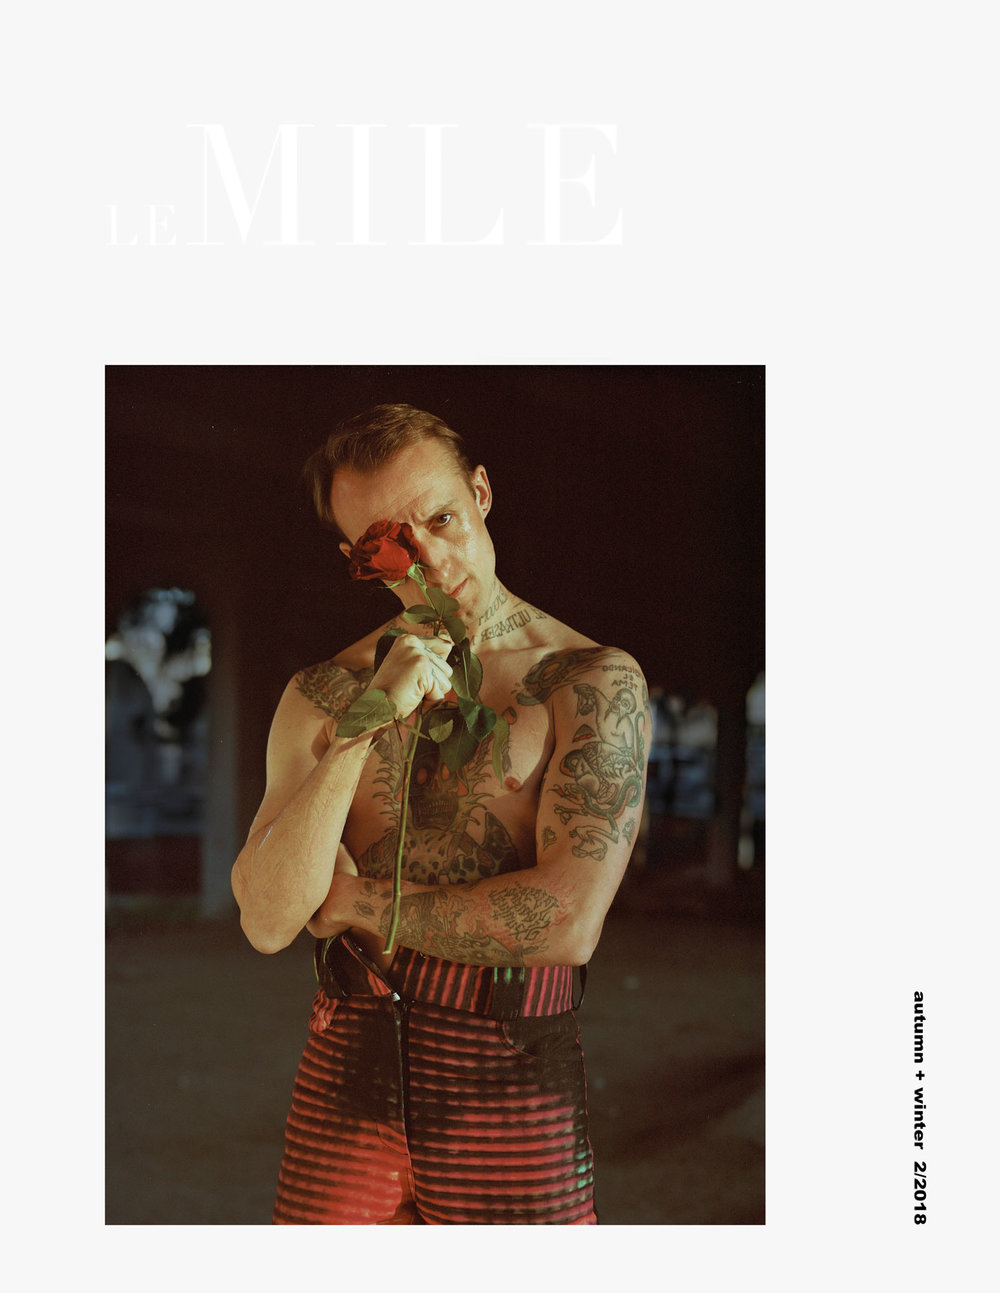 LE-MILE-COVER-issue-25-white-issue-02-2018.jpg